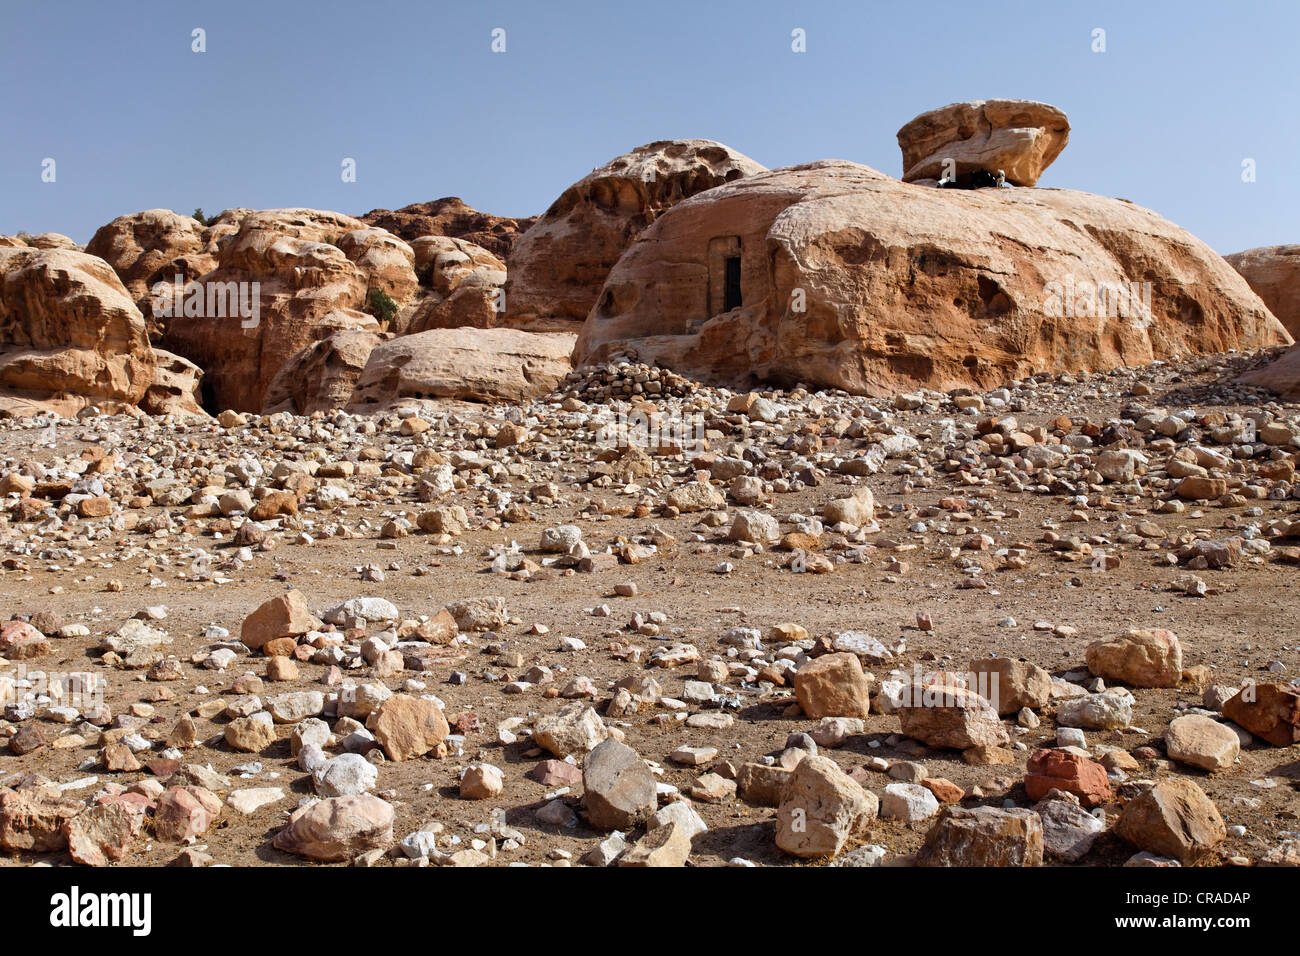 Sandstone rocks, tombs, gravel, Little Petra, the capital city of the Nabataeans, rock city, UNESCO World Hertage - Stock Image